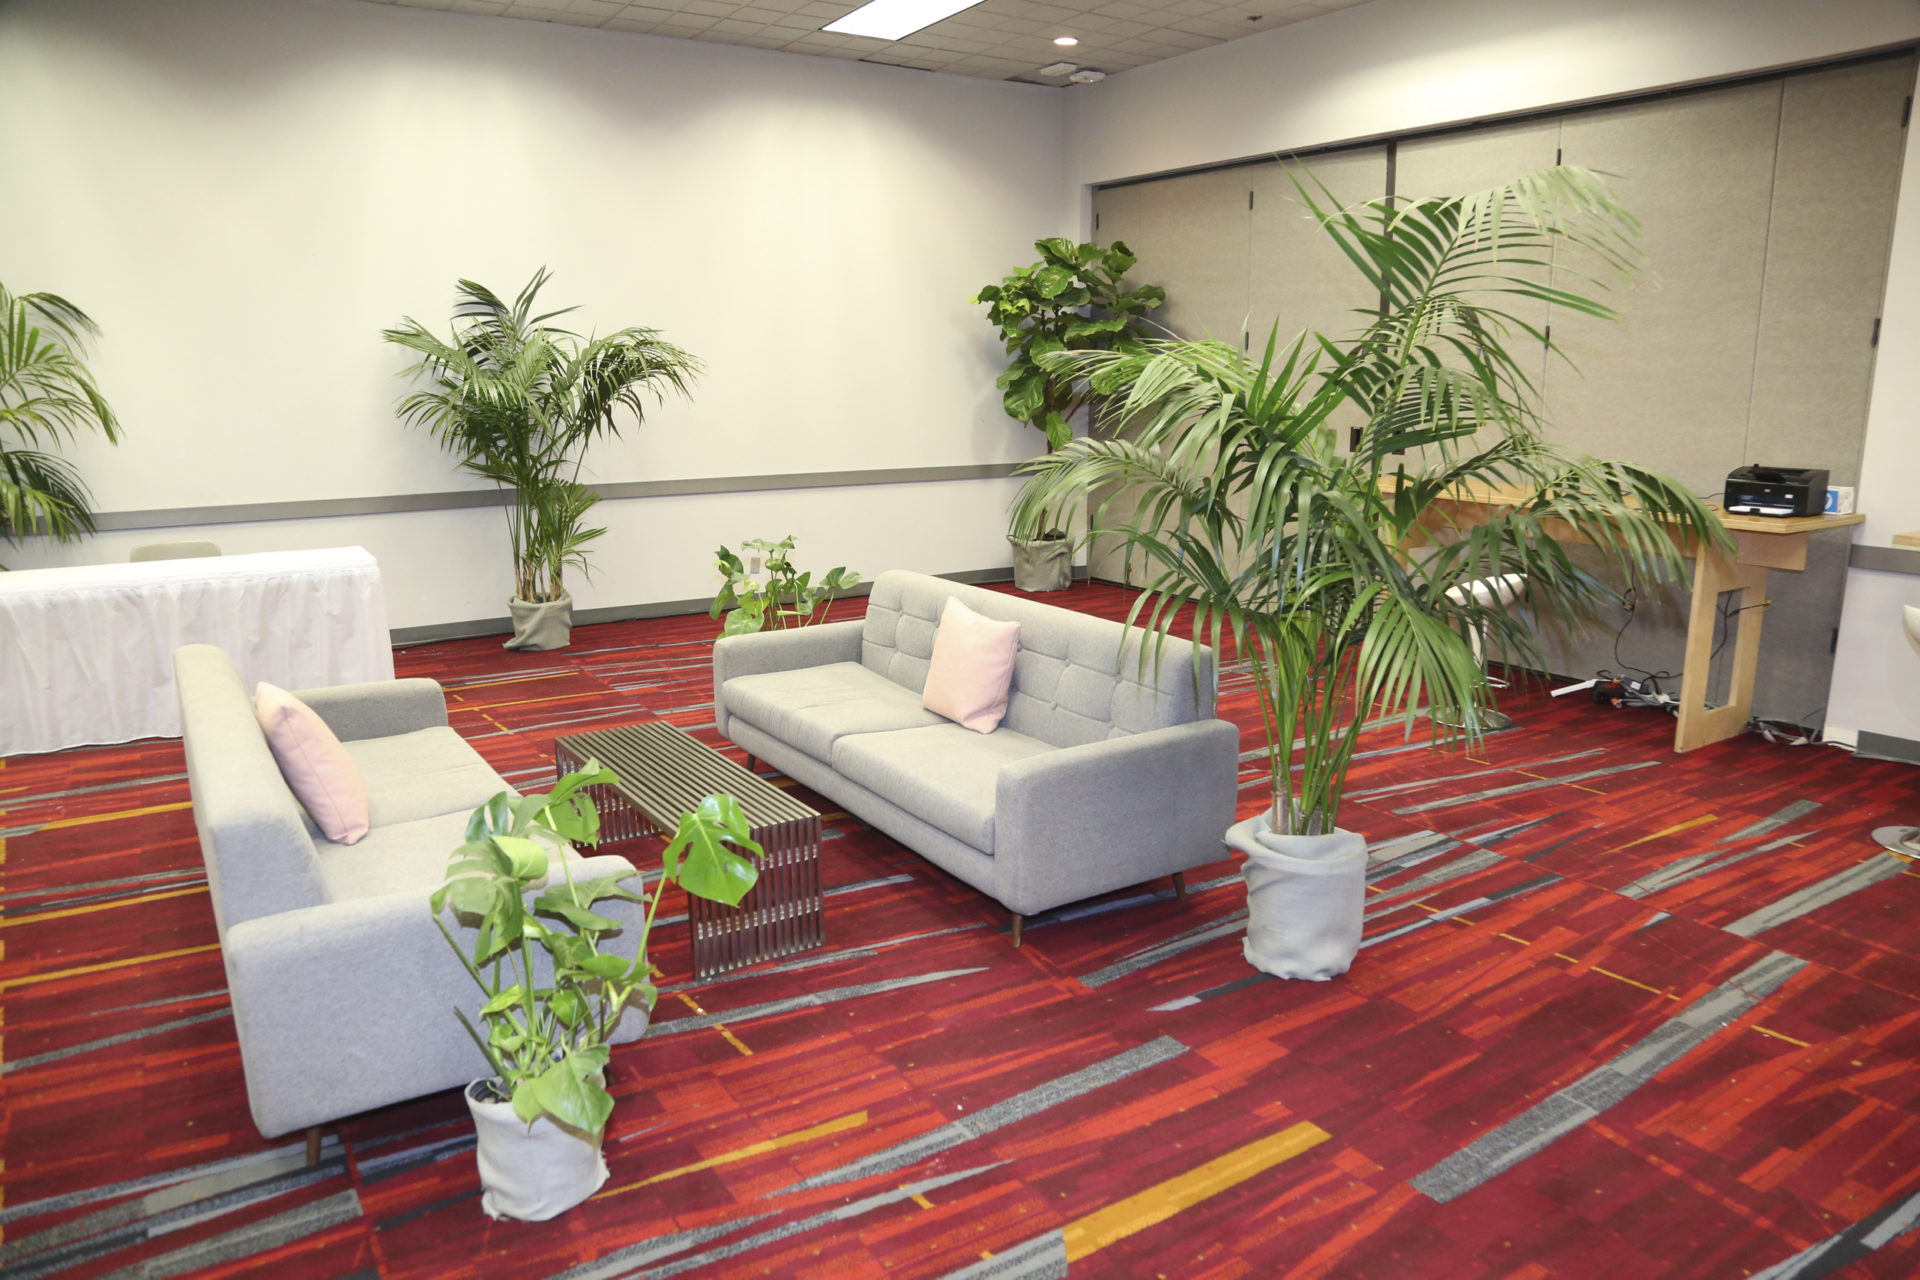 Liven up a trade show lounge with plant rentals.